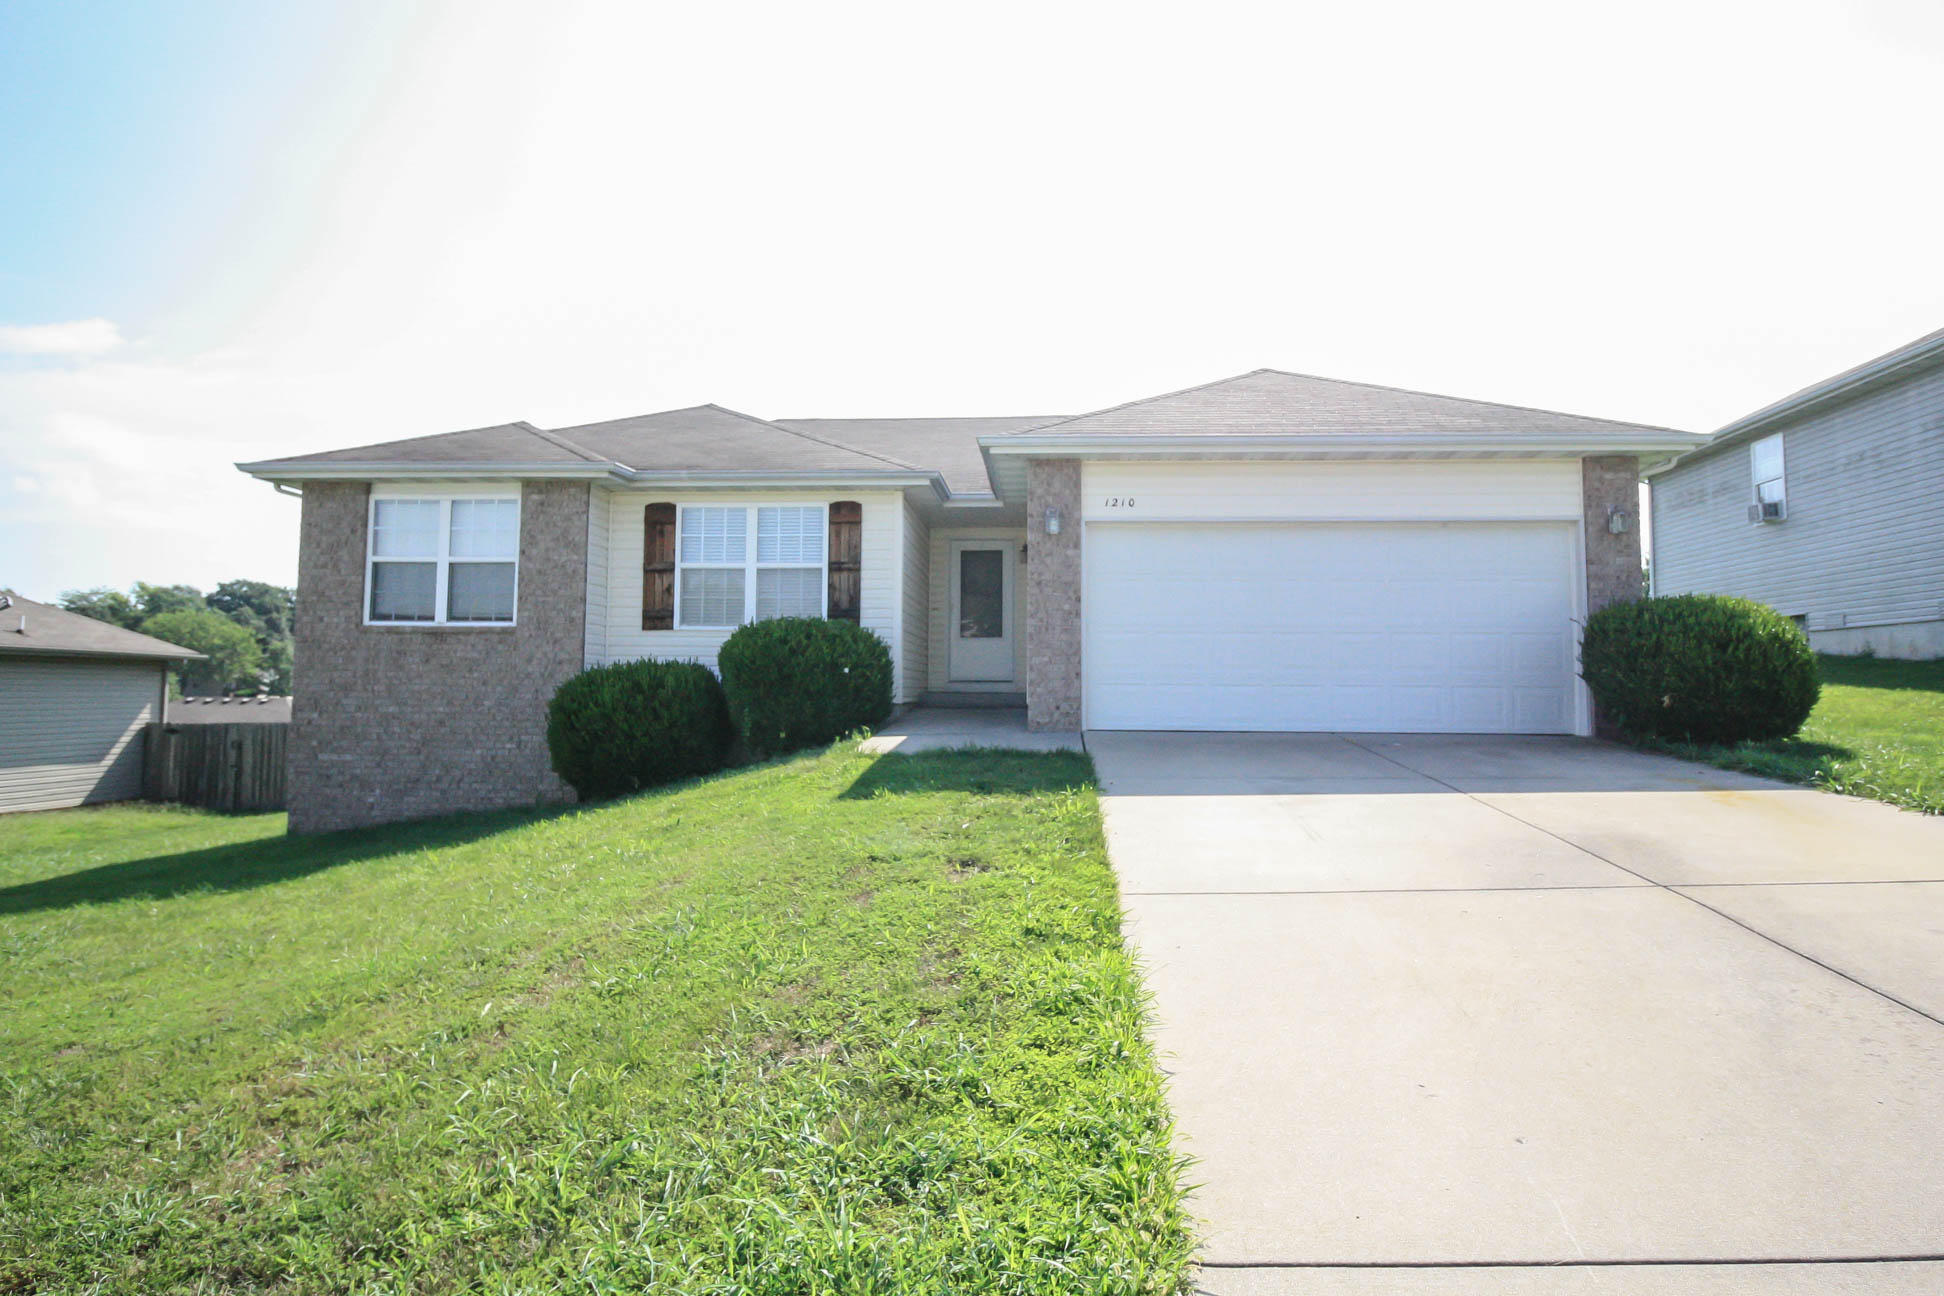 1210 South 14th Street Ozark, MO 65721